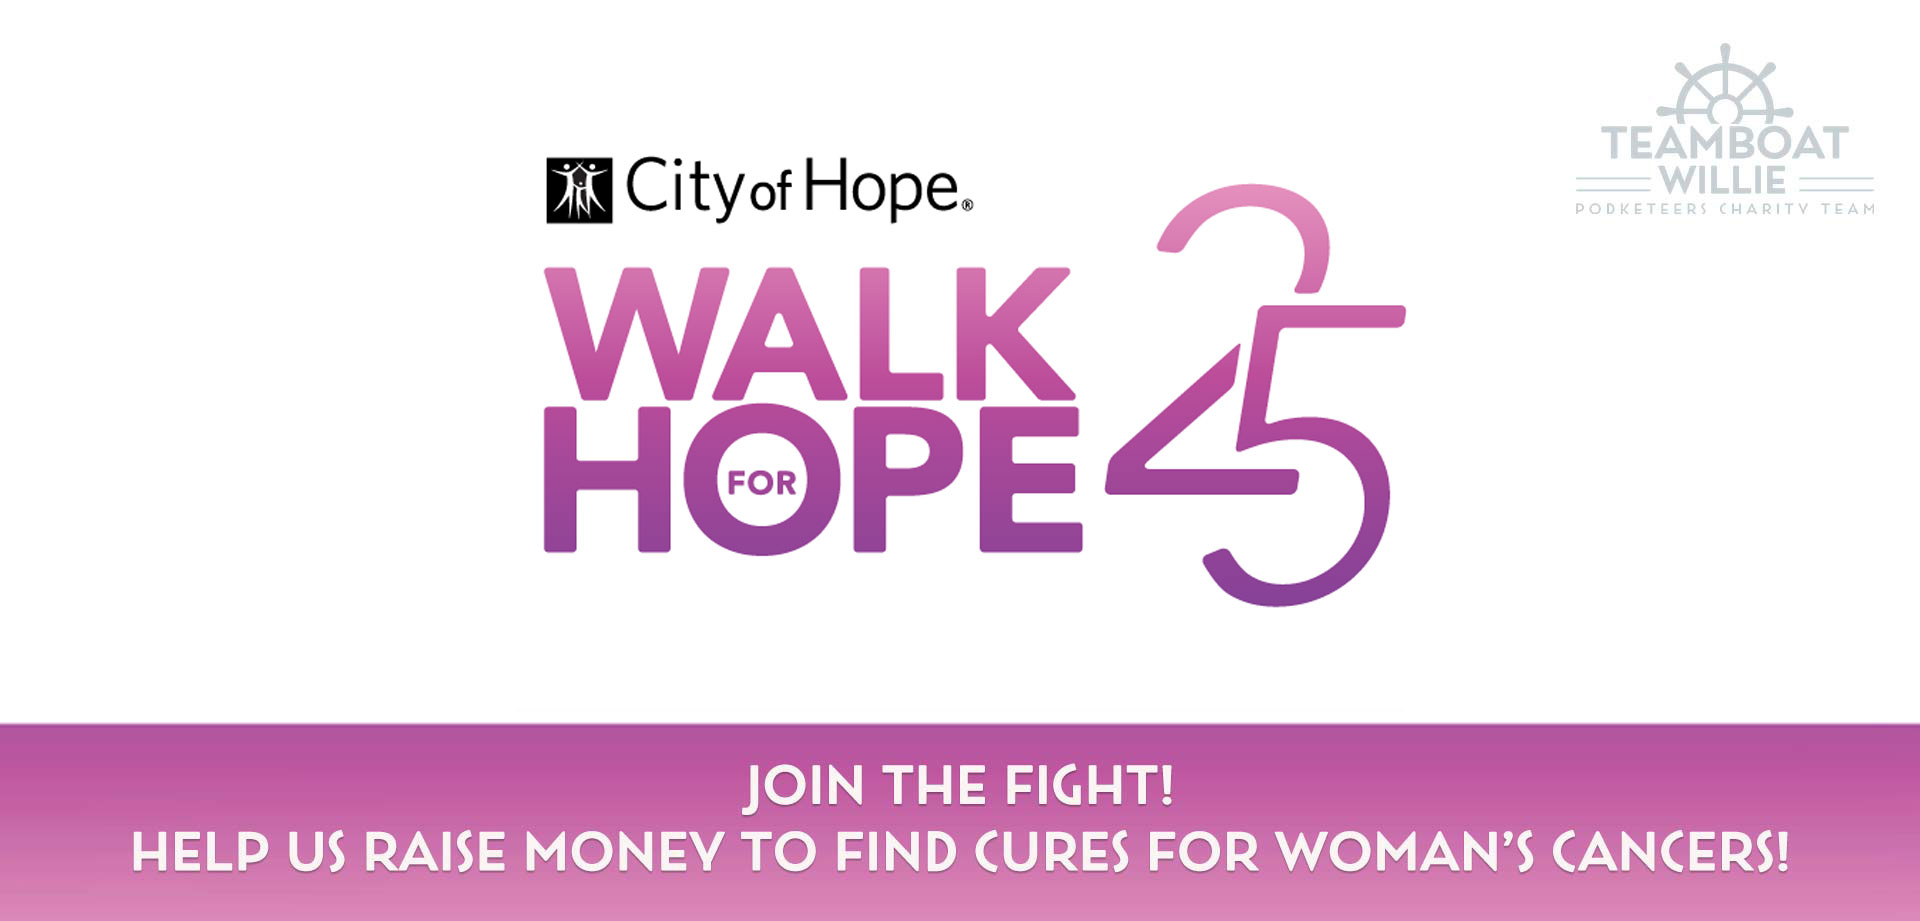 Announcement for Teamboat Willie's participation in City of Hope's Walk For Hope charity virtual walk